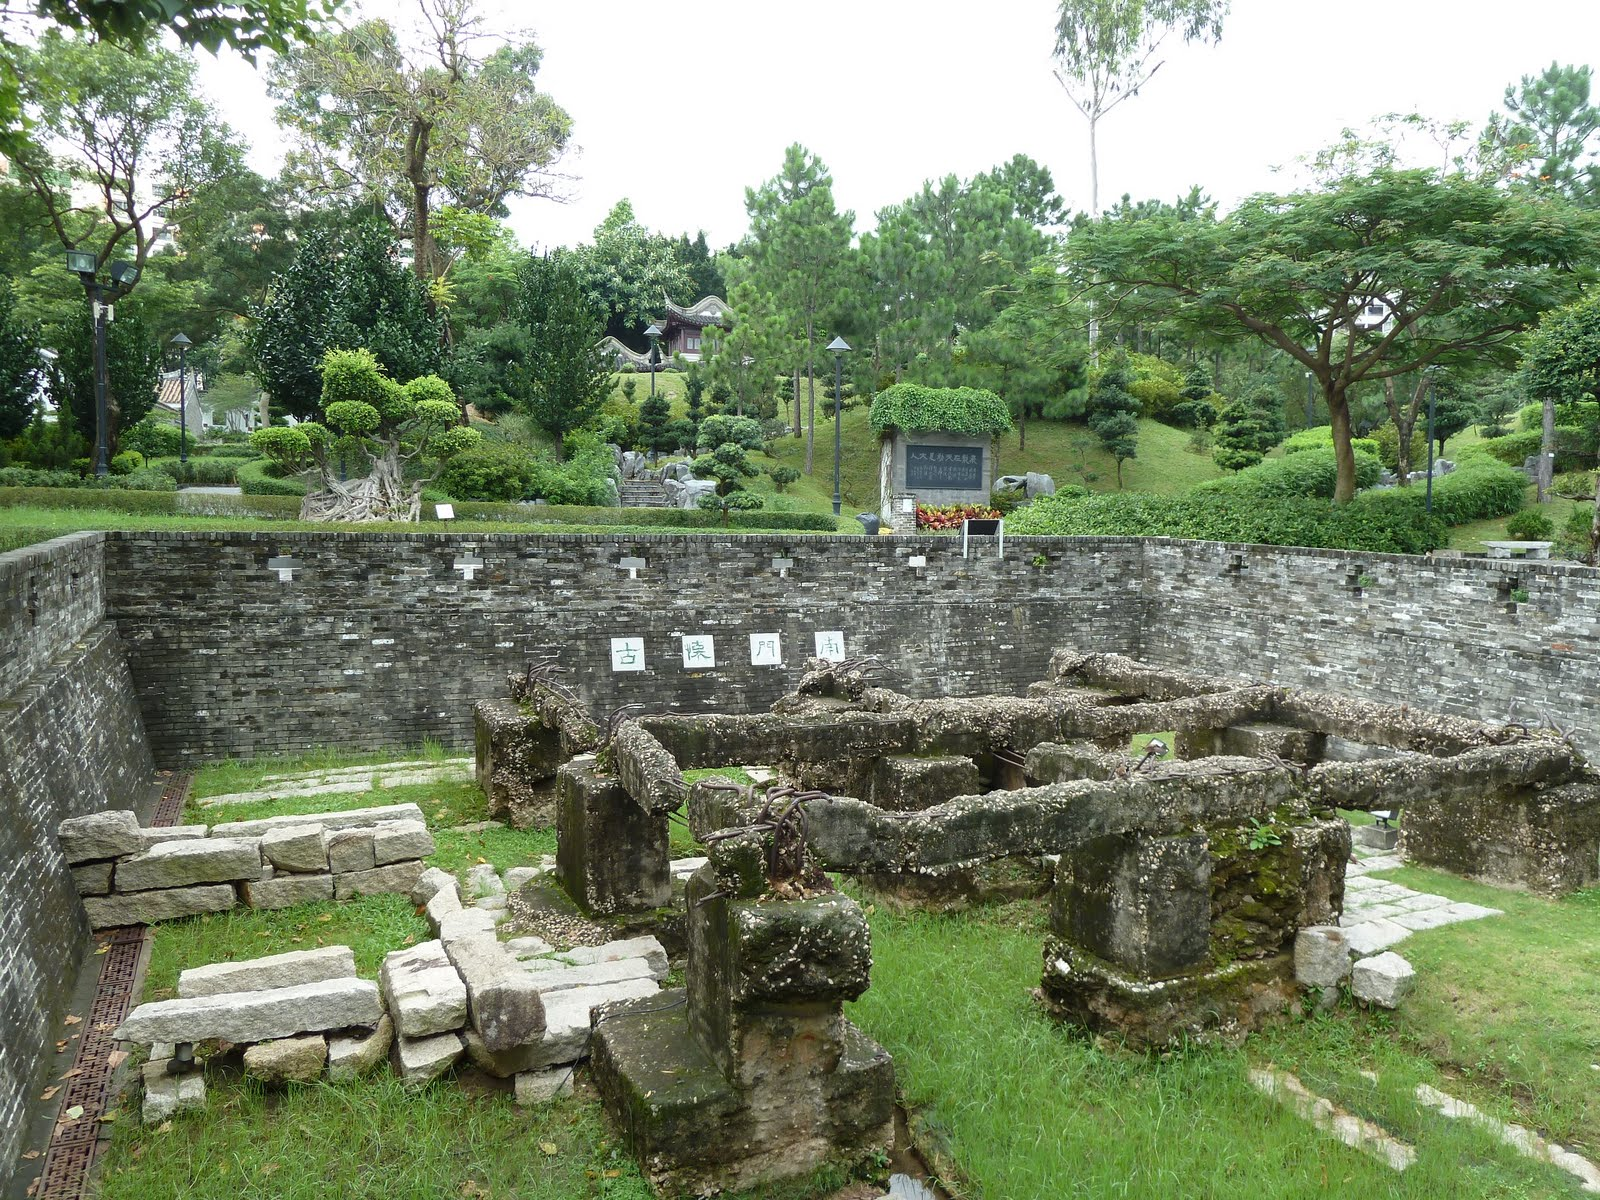 Gary and Stef in Asia: Update 30 - Kowloon Walled City